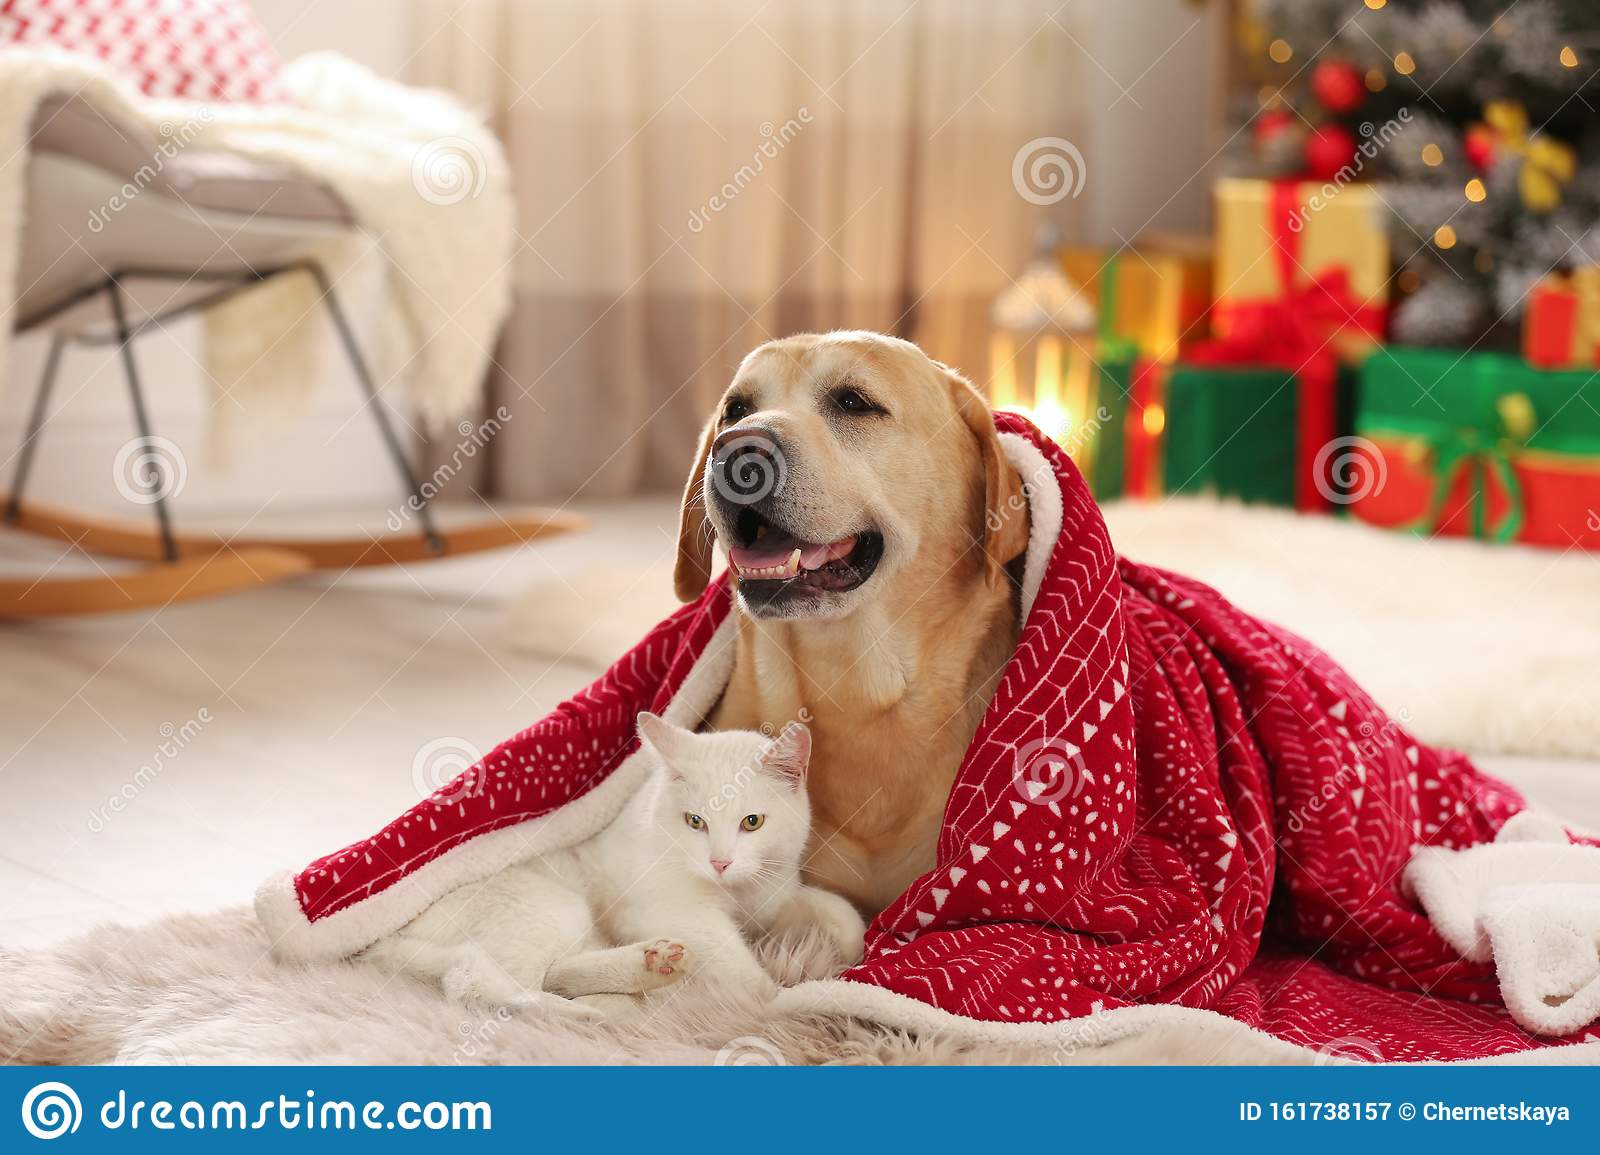 Adorable Dog And Cat Together Under Blanket At Room Decorated For Christmas Stock Image Image Of Color Angora 161738157